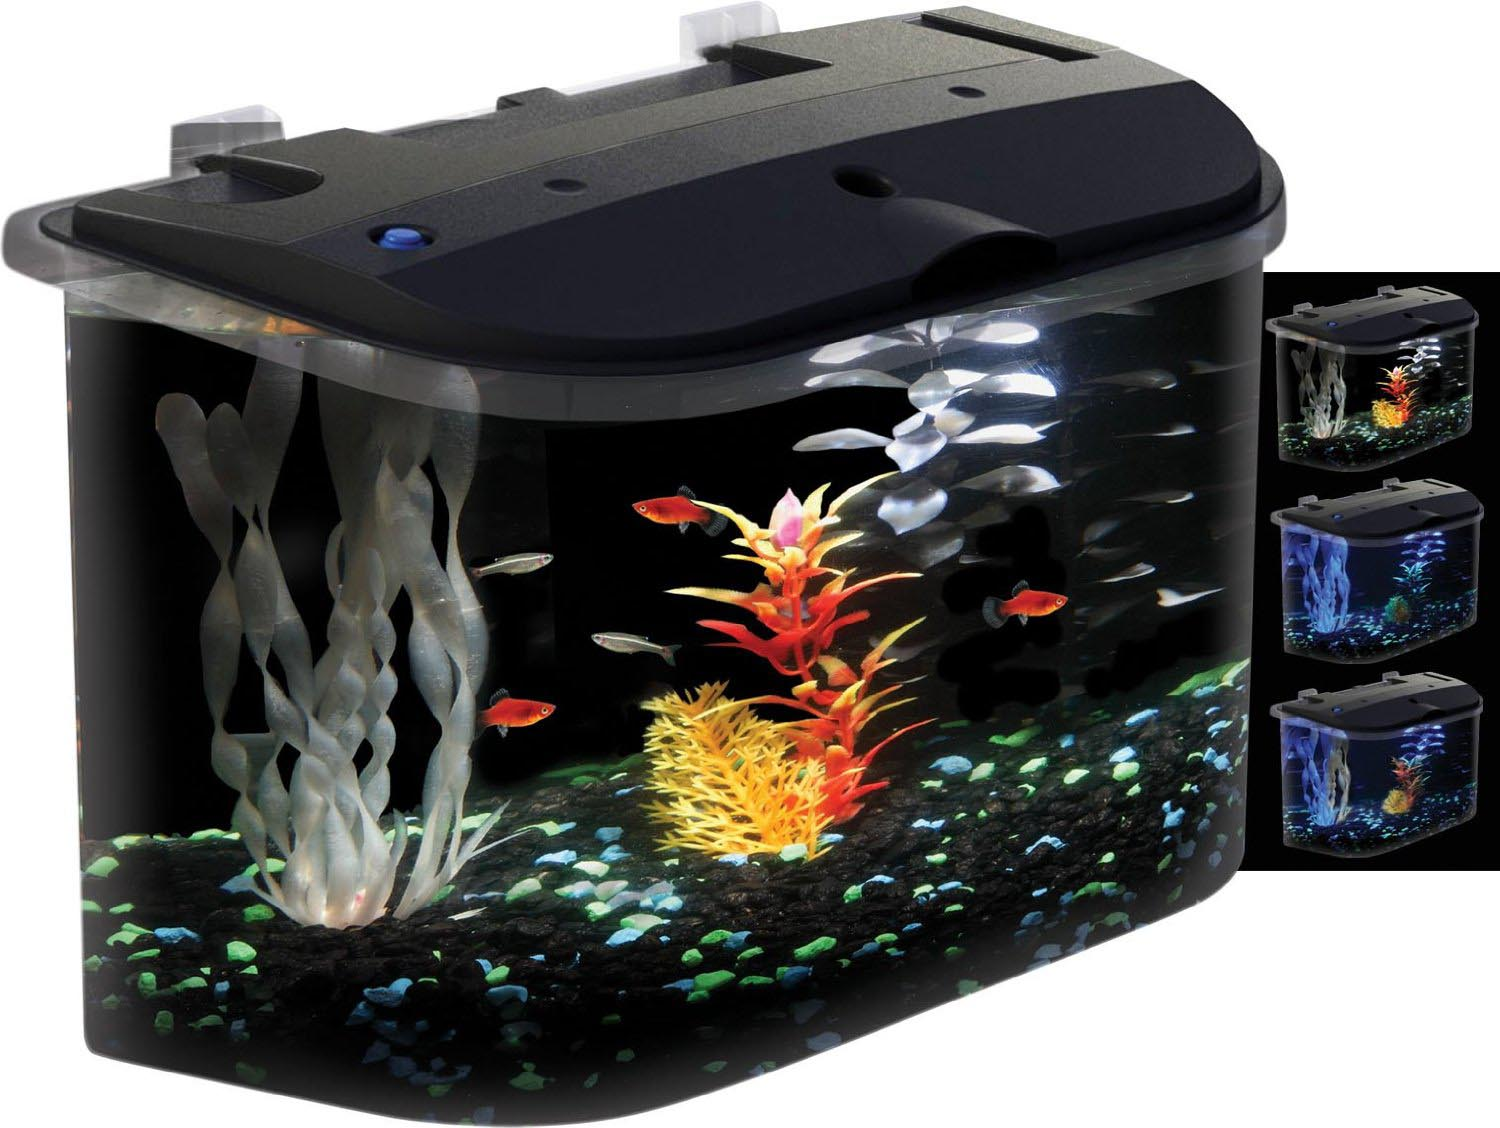 Aquarium tanks for sale melbourne predator tank for sale for Small fish tanks for sale